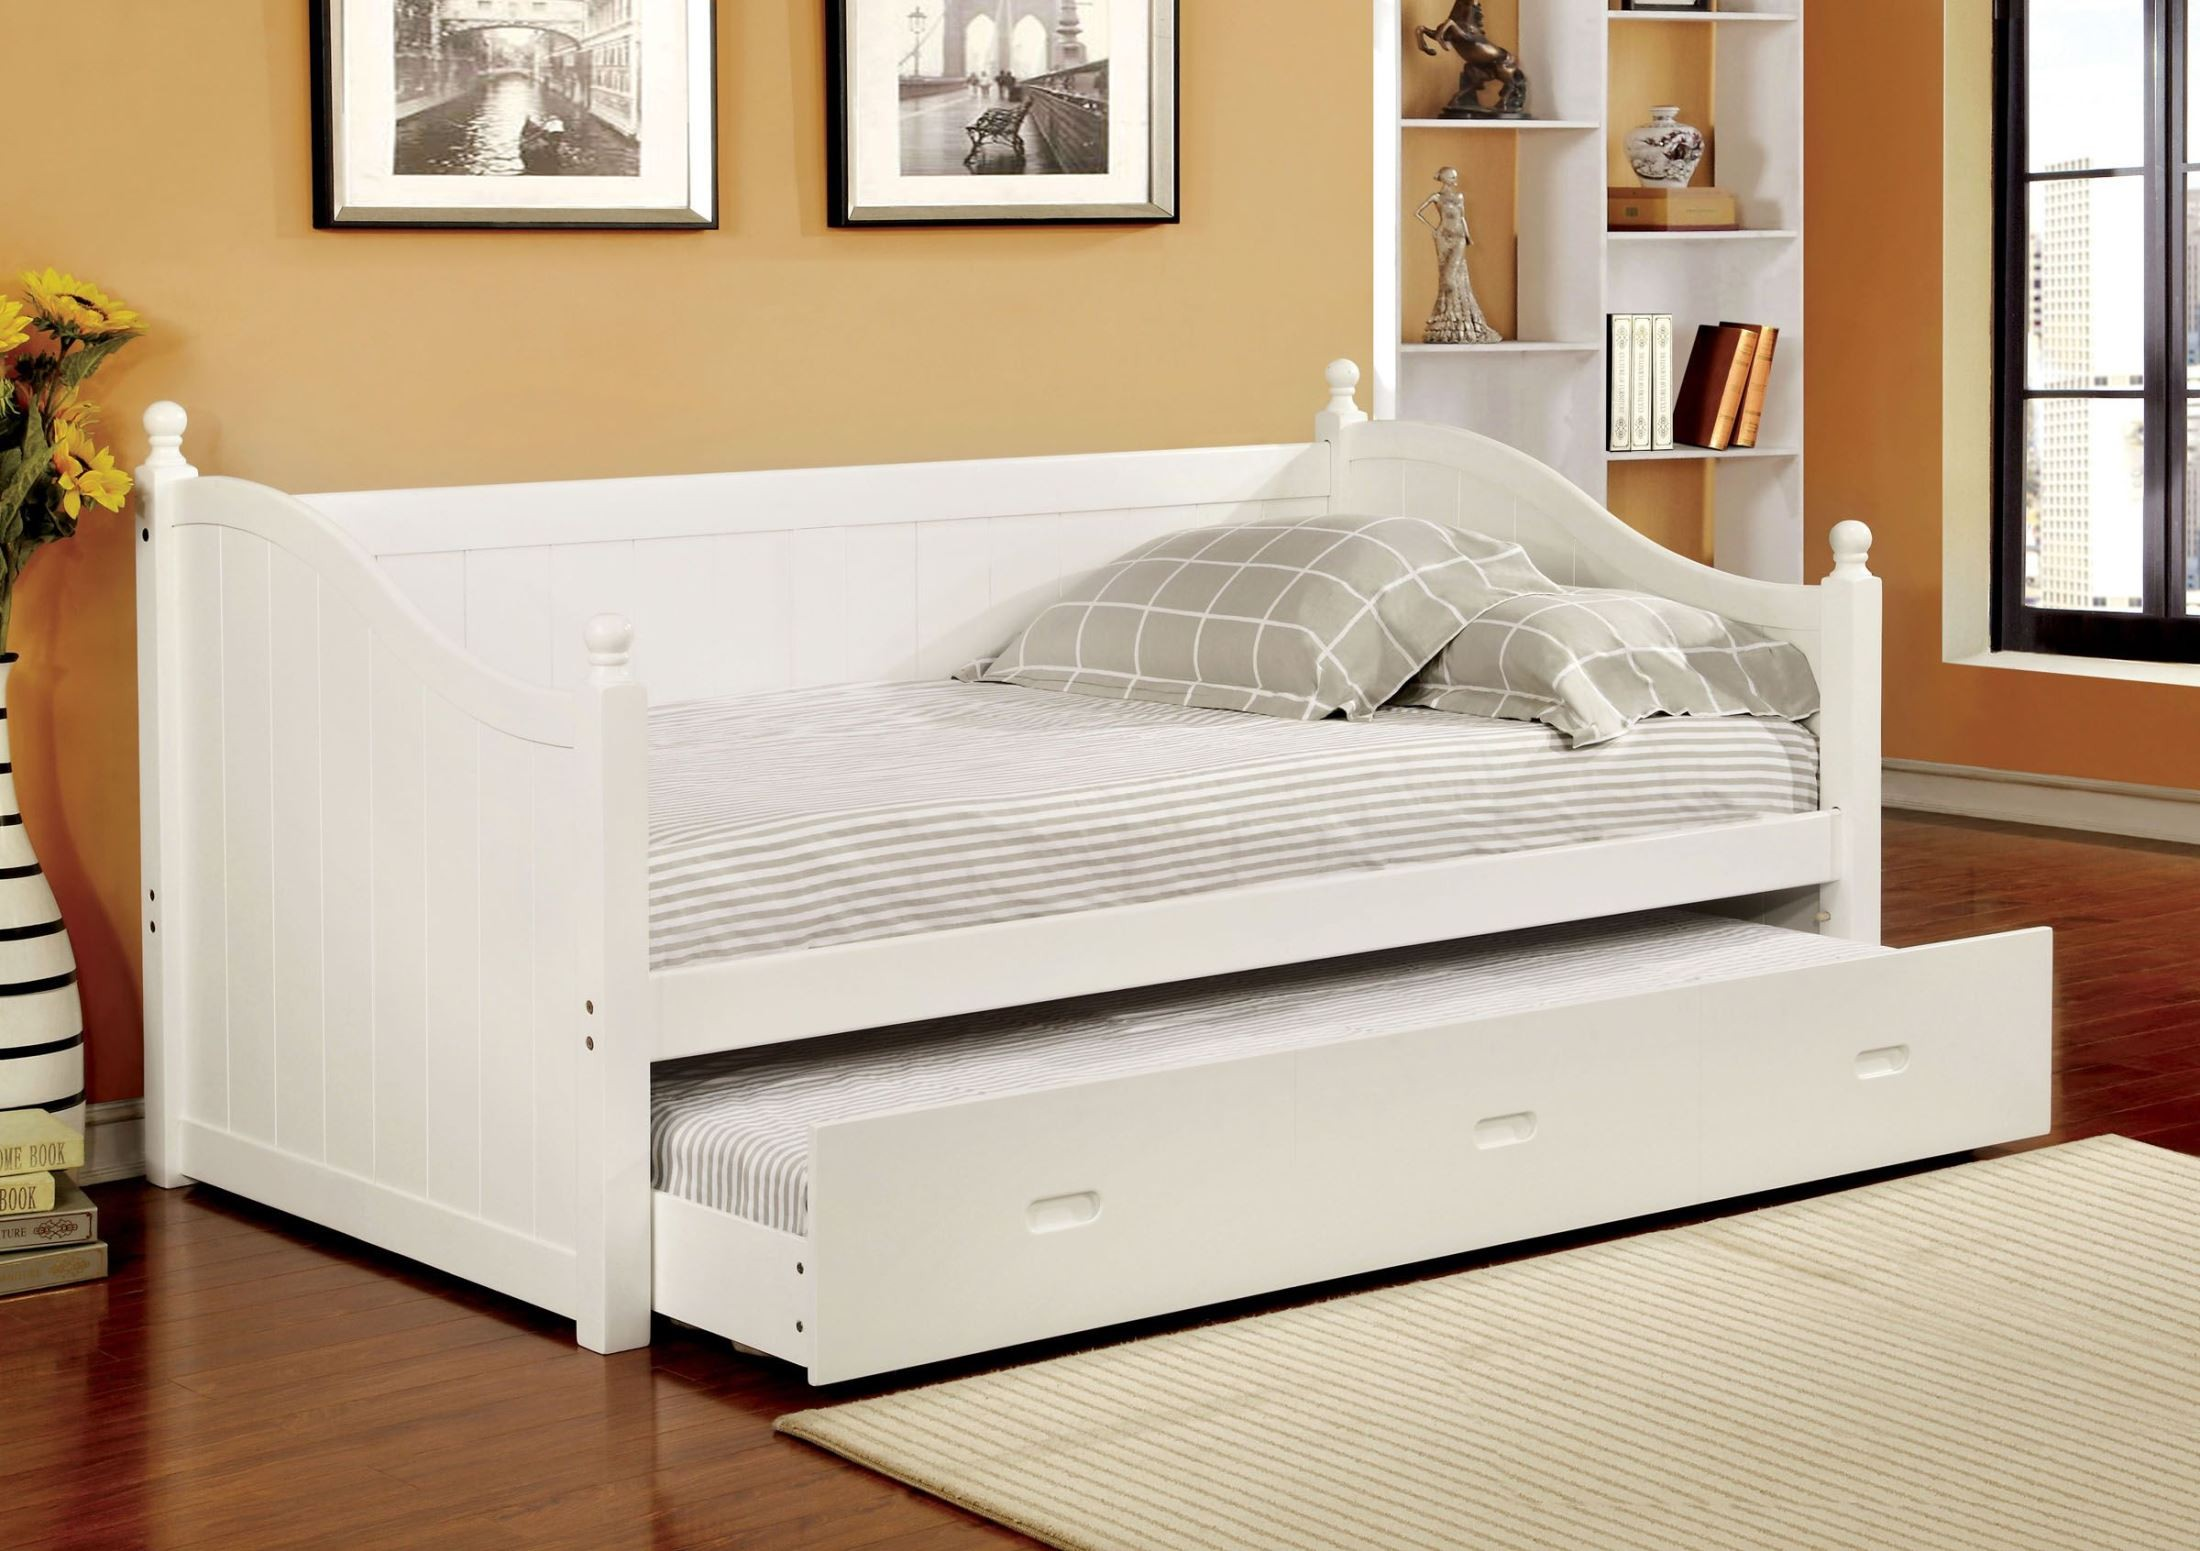 Walcott White Twin Trundle Daybed From Furniture Of America Cm1928wh Bed Coleman Furniture